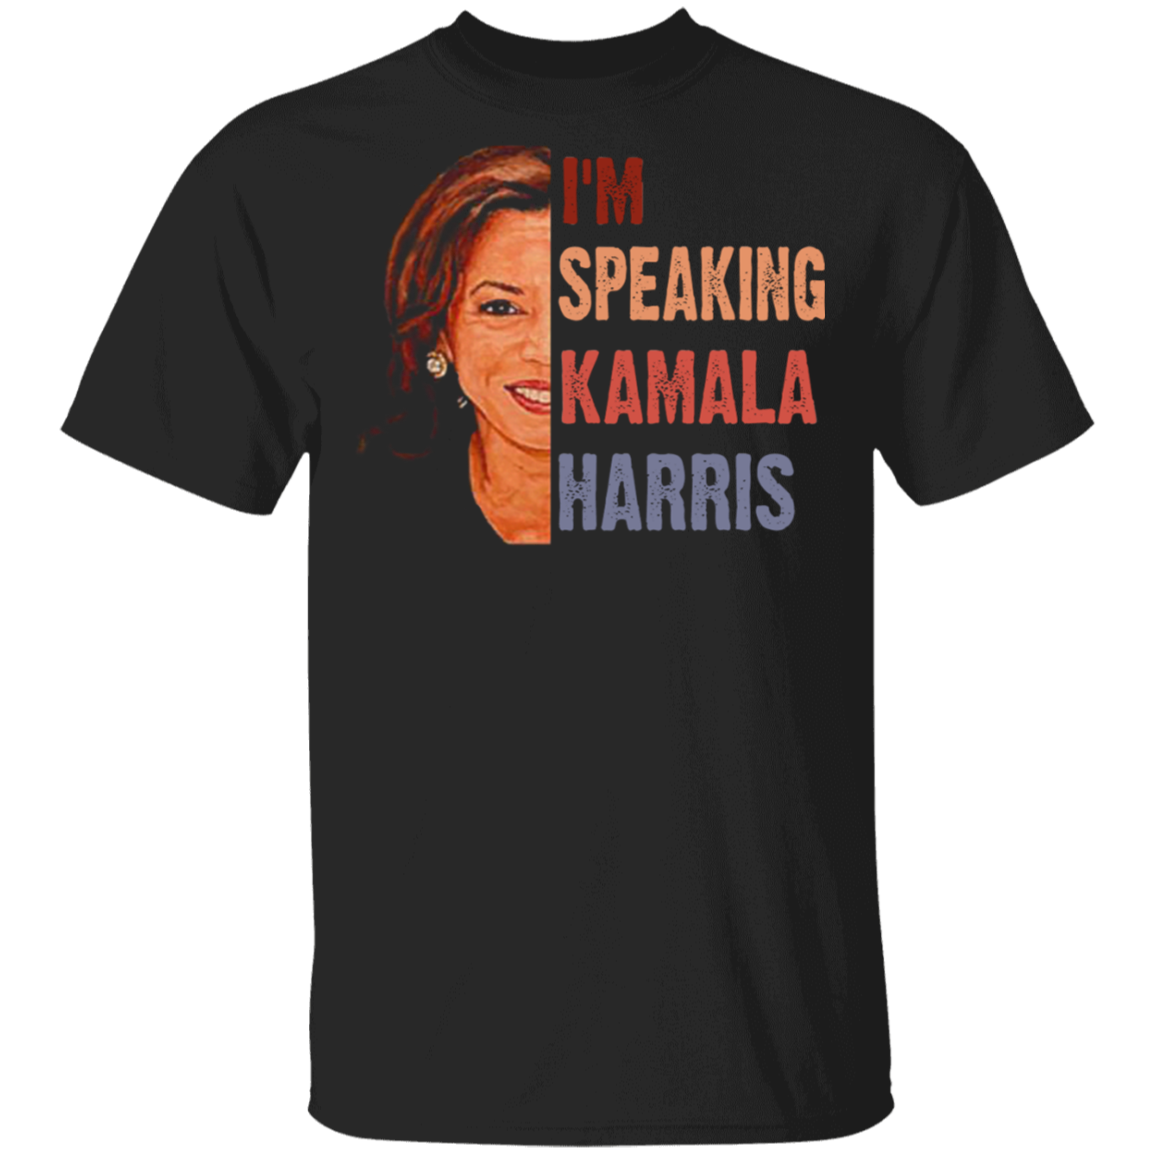 Kamala Harris Im Speaking T-Shirt Mr Vice President I'm Speaking Shirt Shut Up Man Merch